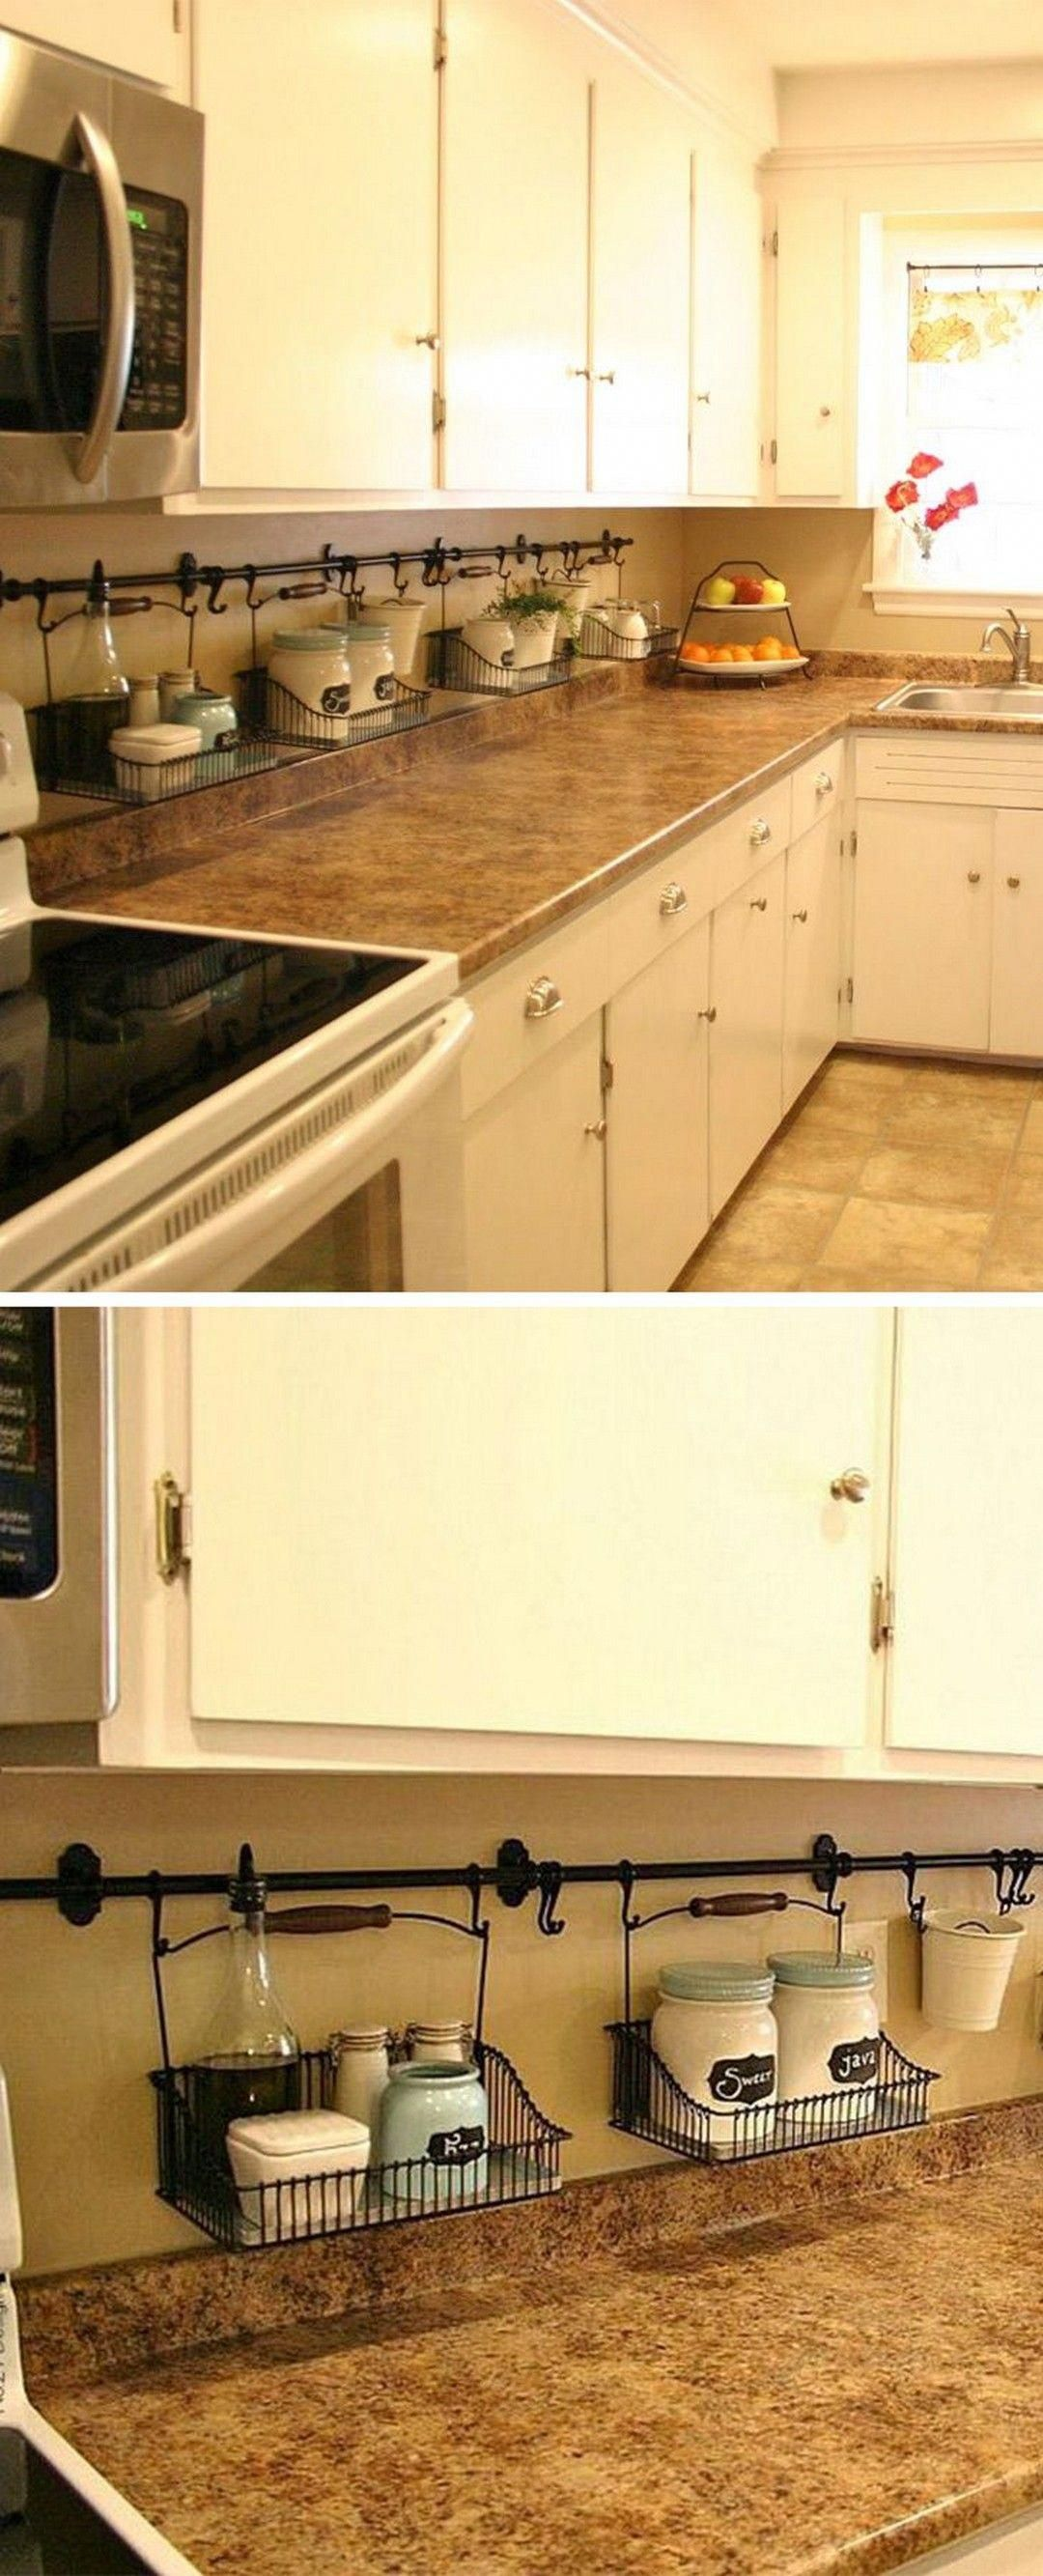 diy kitchen organization and storage hacks ideas